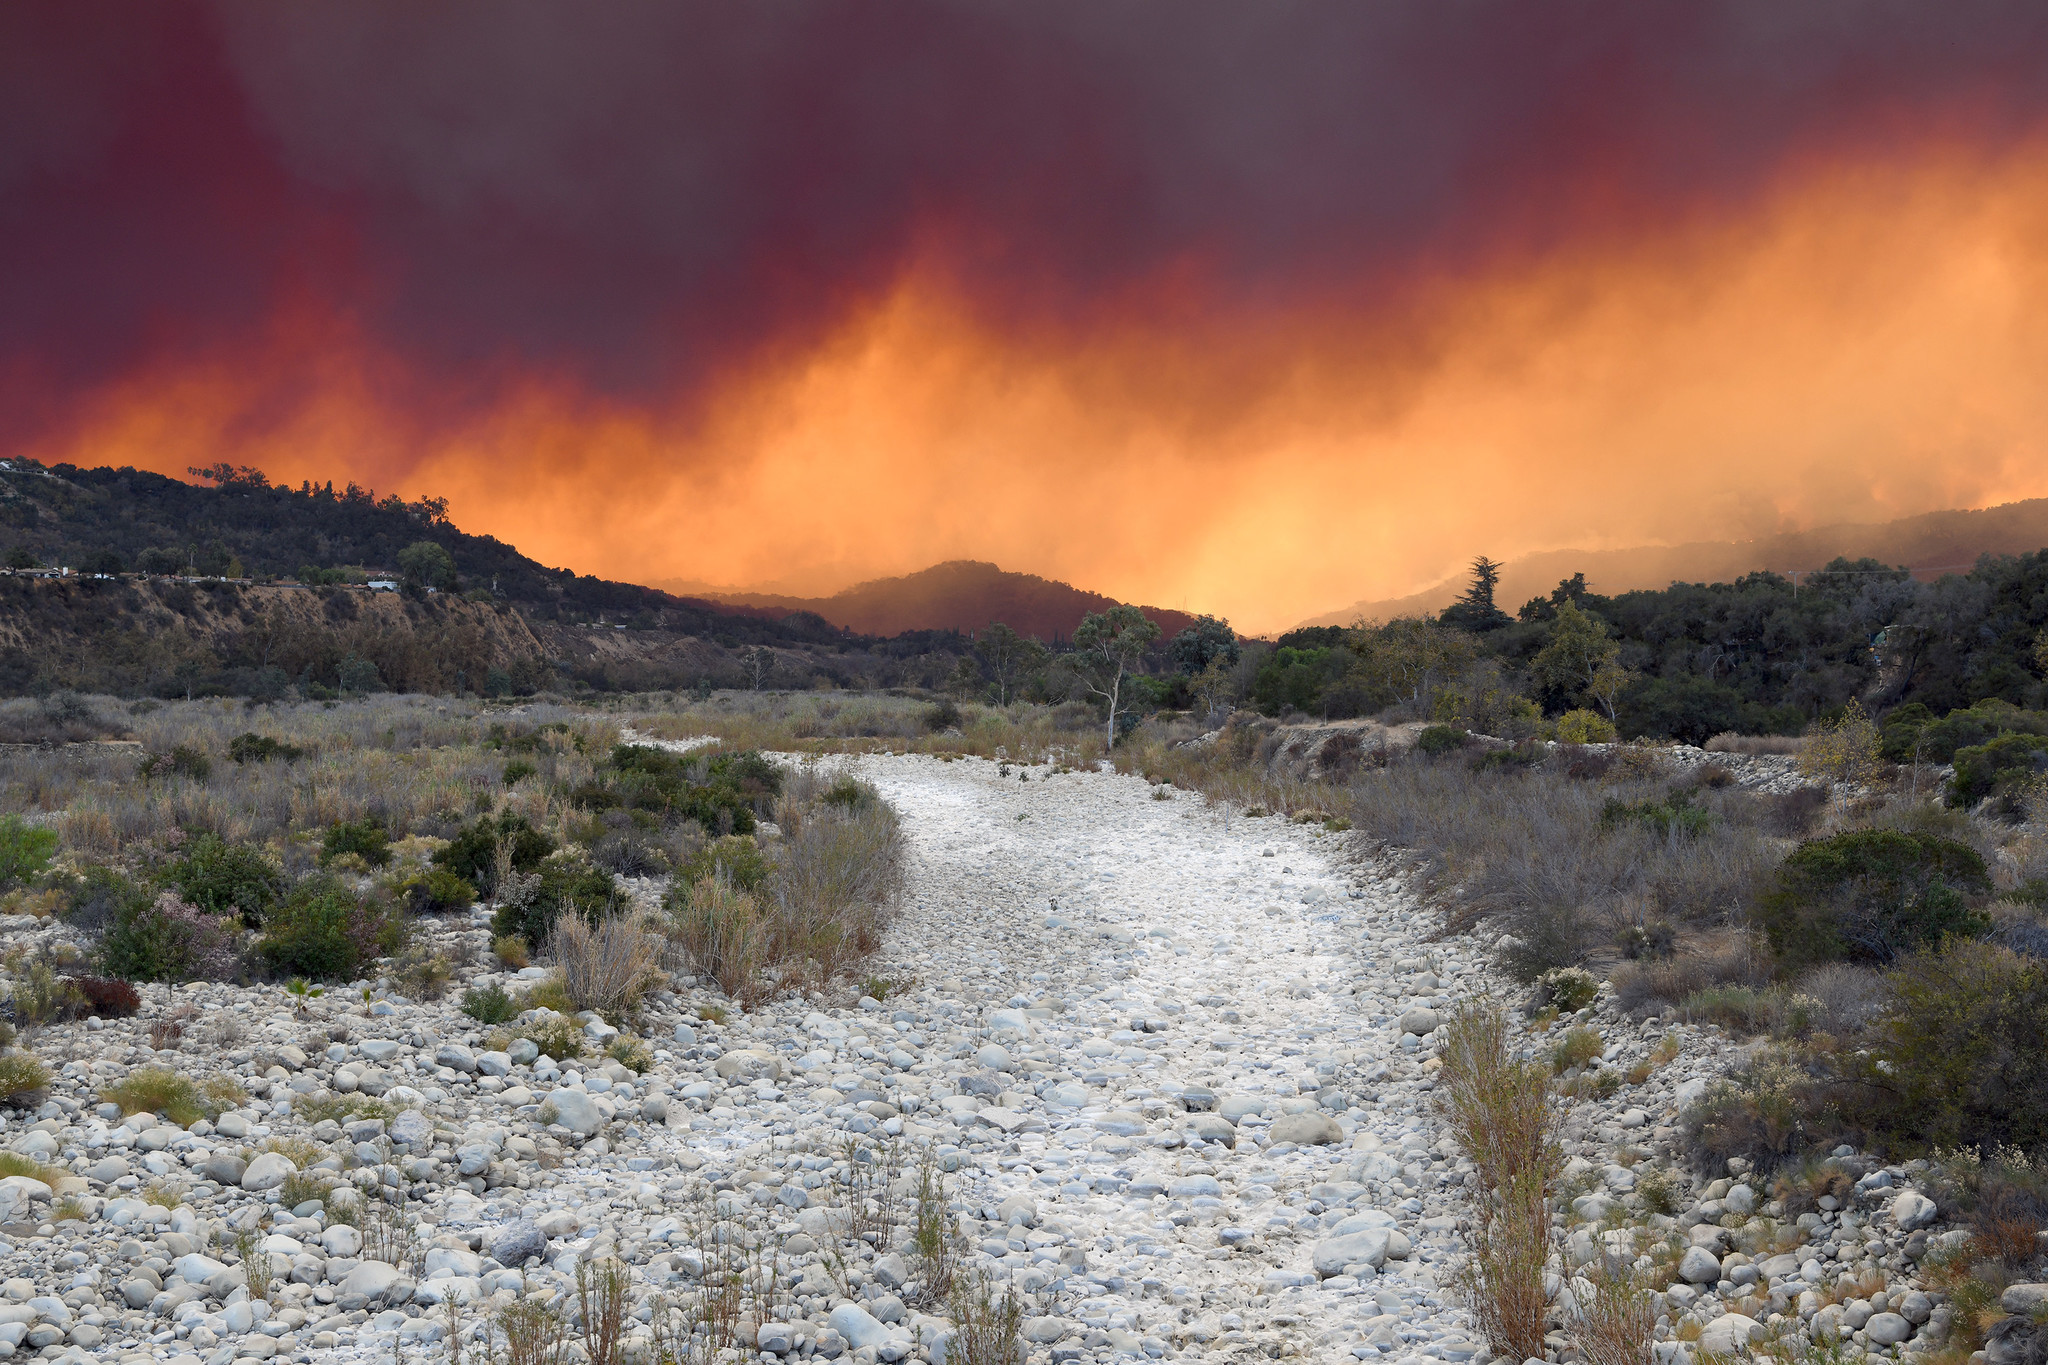 Smoke from the Thomas fire crosses over the dry Ventura River in Ojai. (Michael Owen Baker / For The Times)